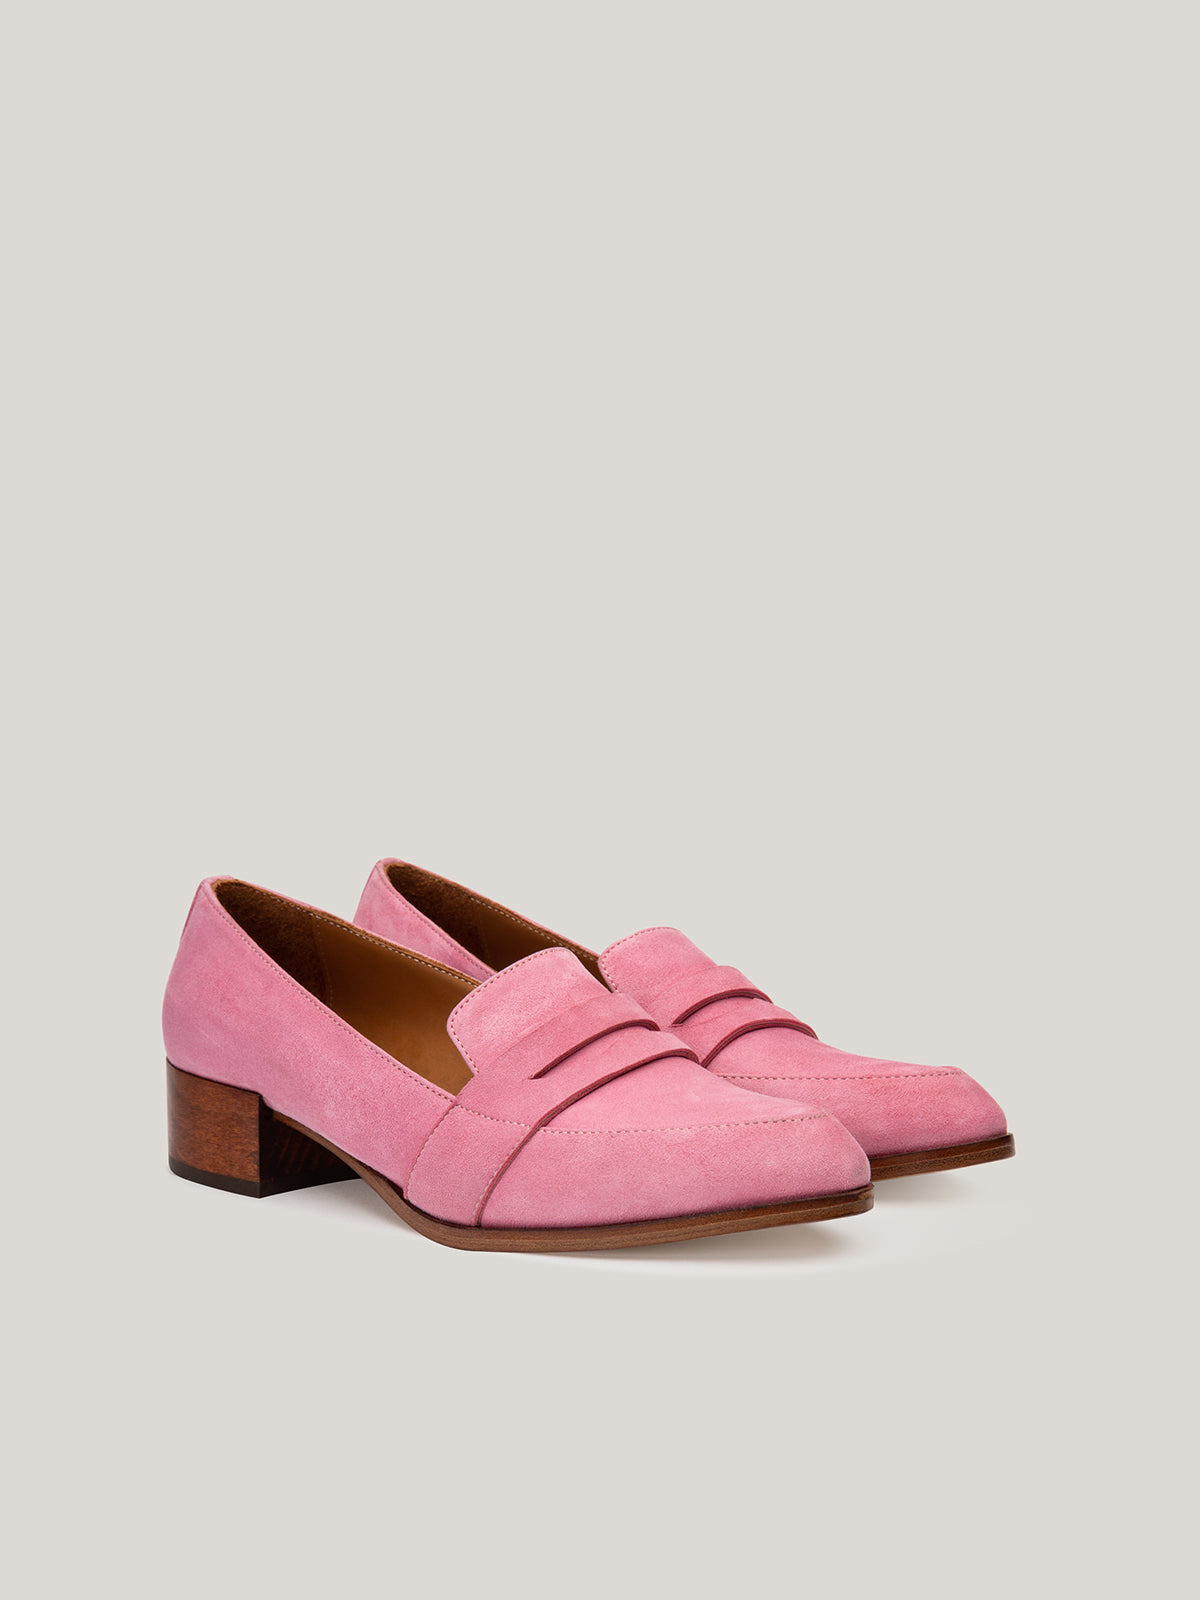 Thelma Loafer in Orchid